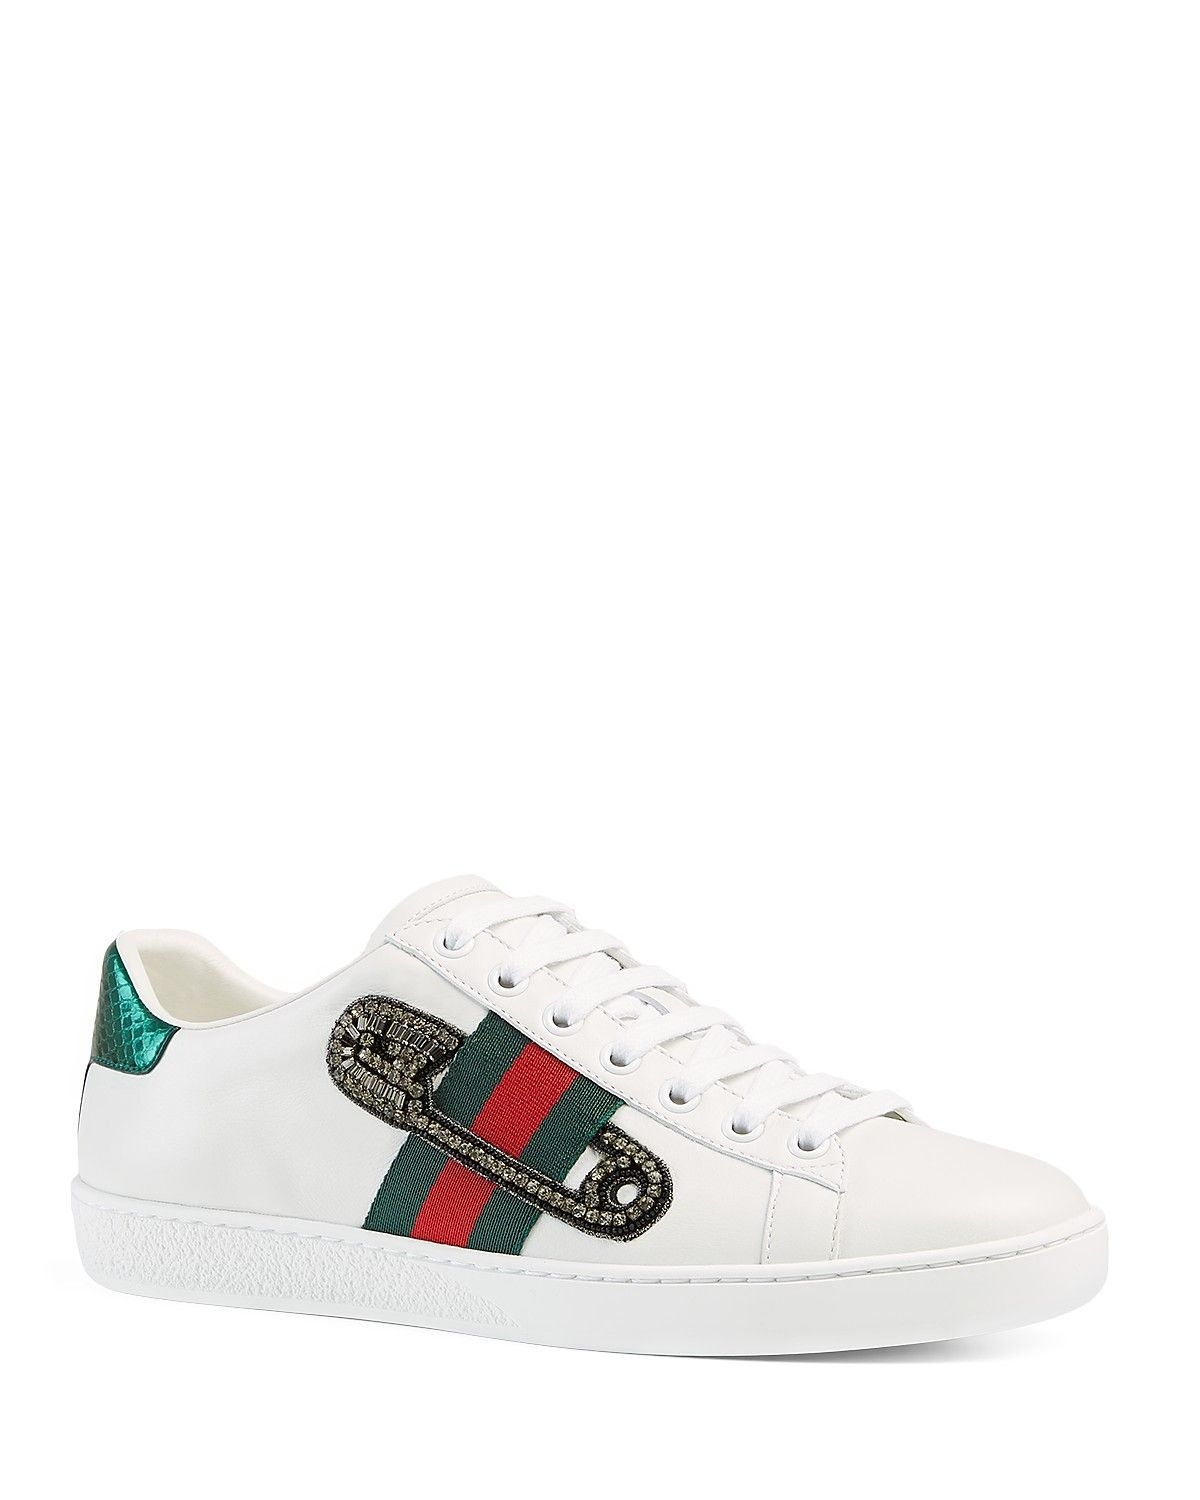 gucci new ace safety pin lace up low top sneakers trainers pinterest safety pins gucci. Black Bedroom Furniture Sets. Home Design Ideas